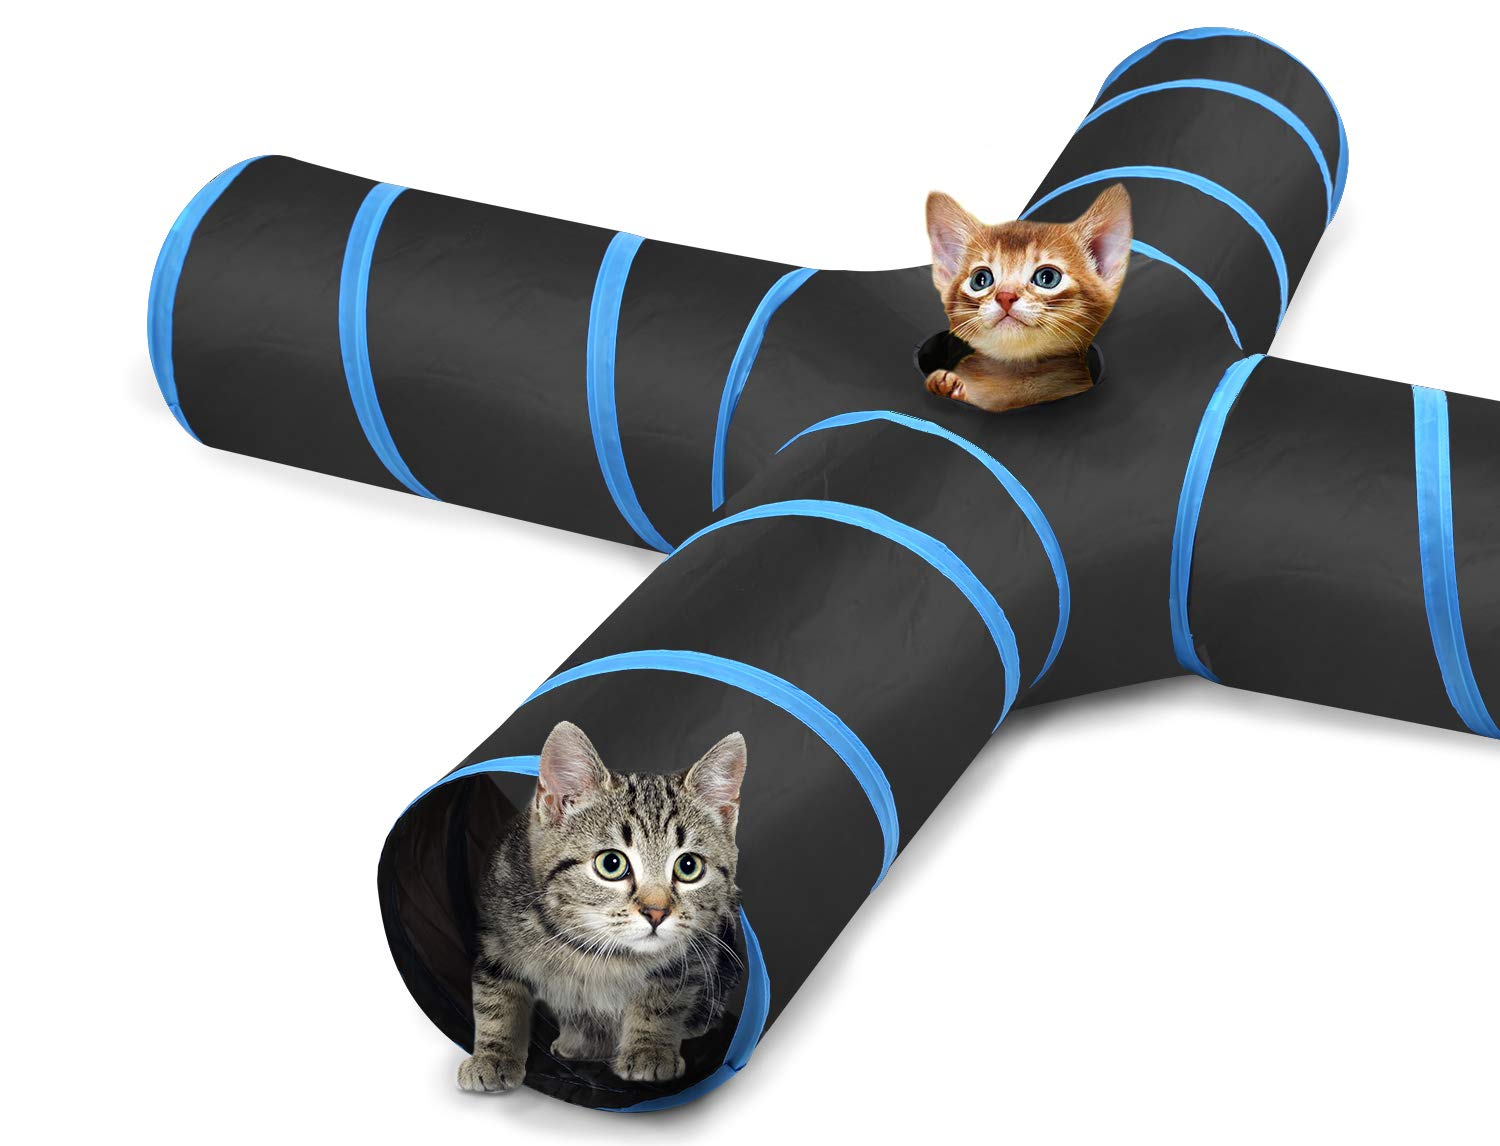 Amazon.com: PAWABOO Cat Tunnel, Premium 4 Way Tunnels Extensible Collapsible Cat Play Tunnel Toy Maze Interactive Tube Toy Cat House with Pompon and Bells ...